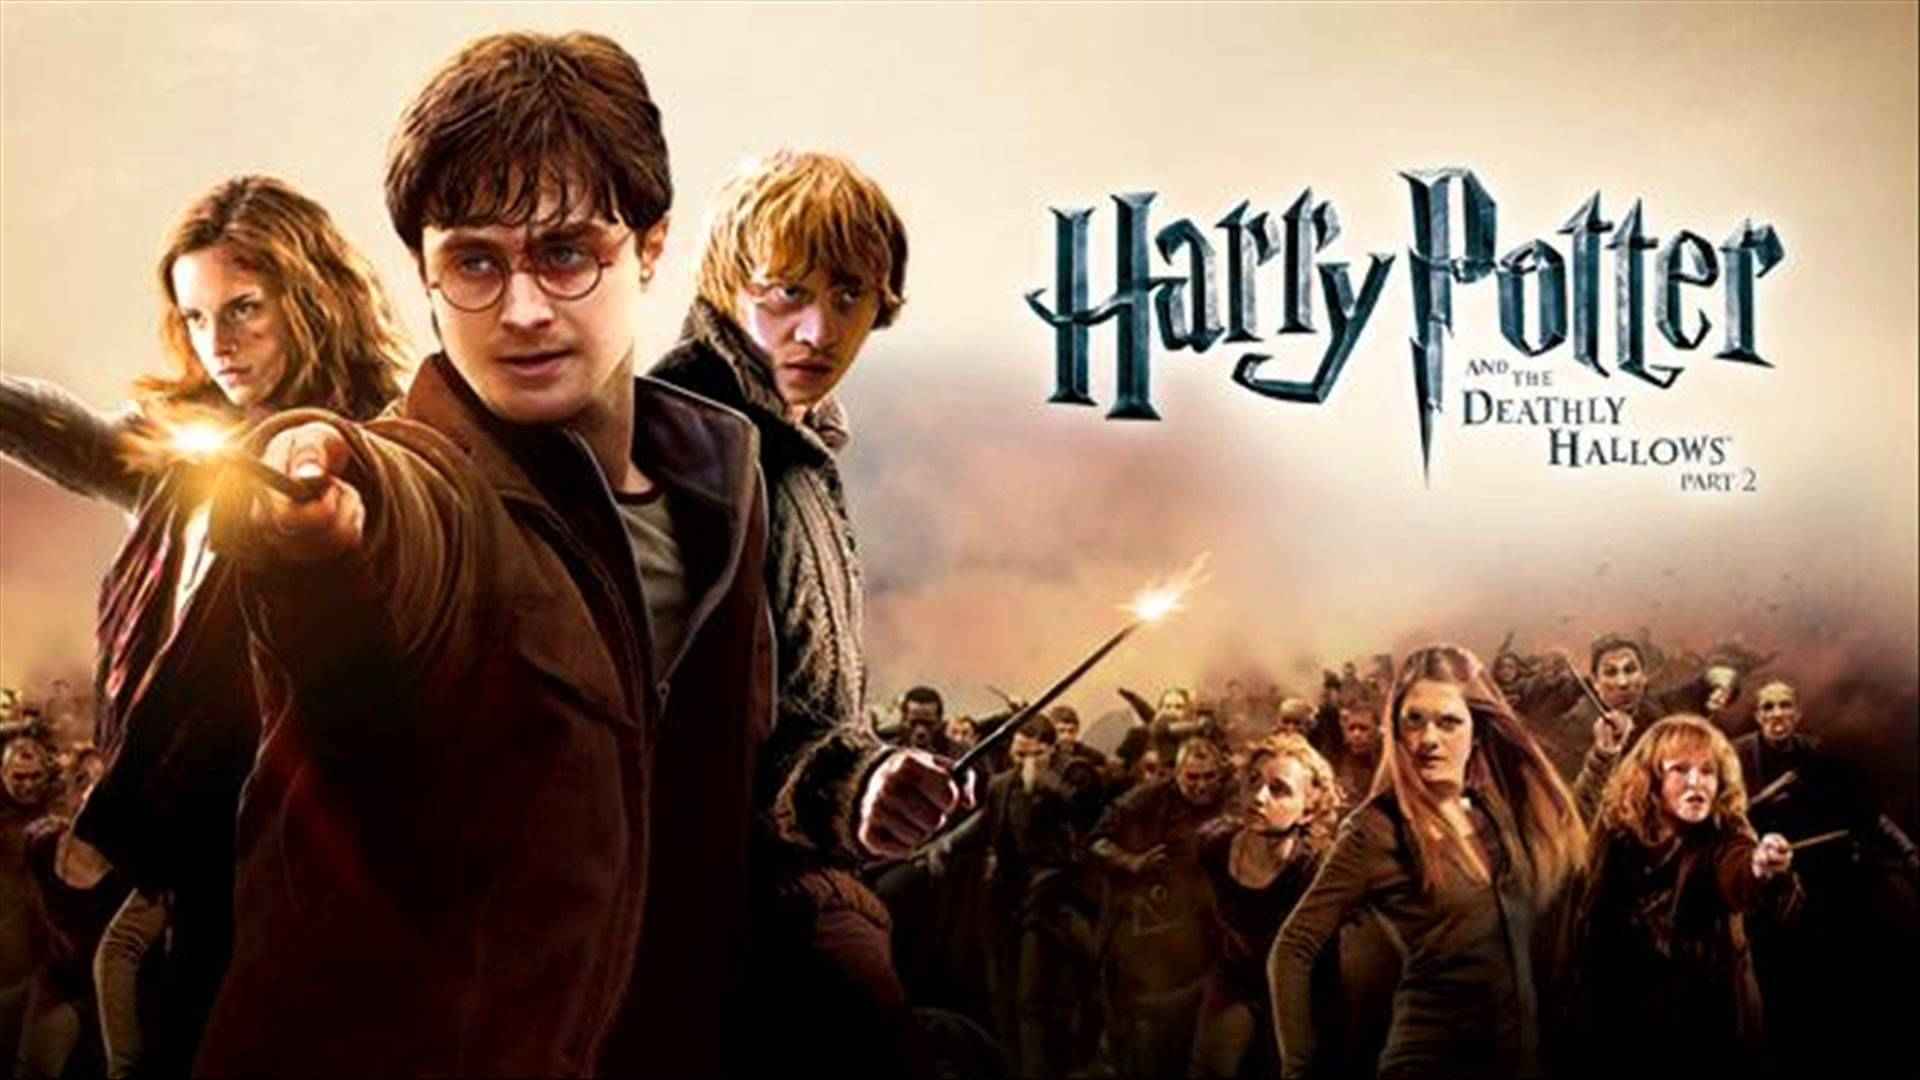 Harry Potter and the Deathly Hallows Part 2 – Harry Potter và Bảo ...